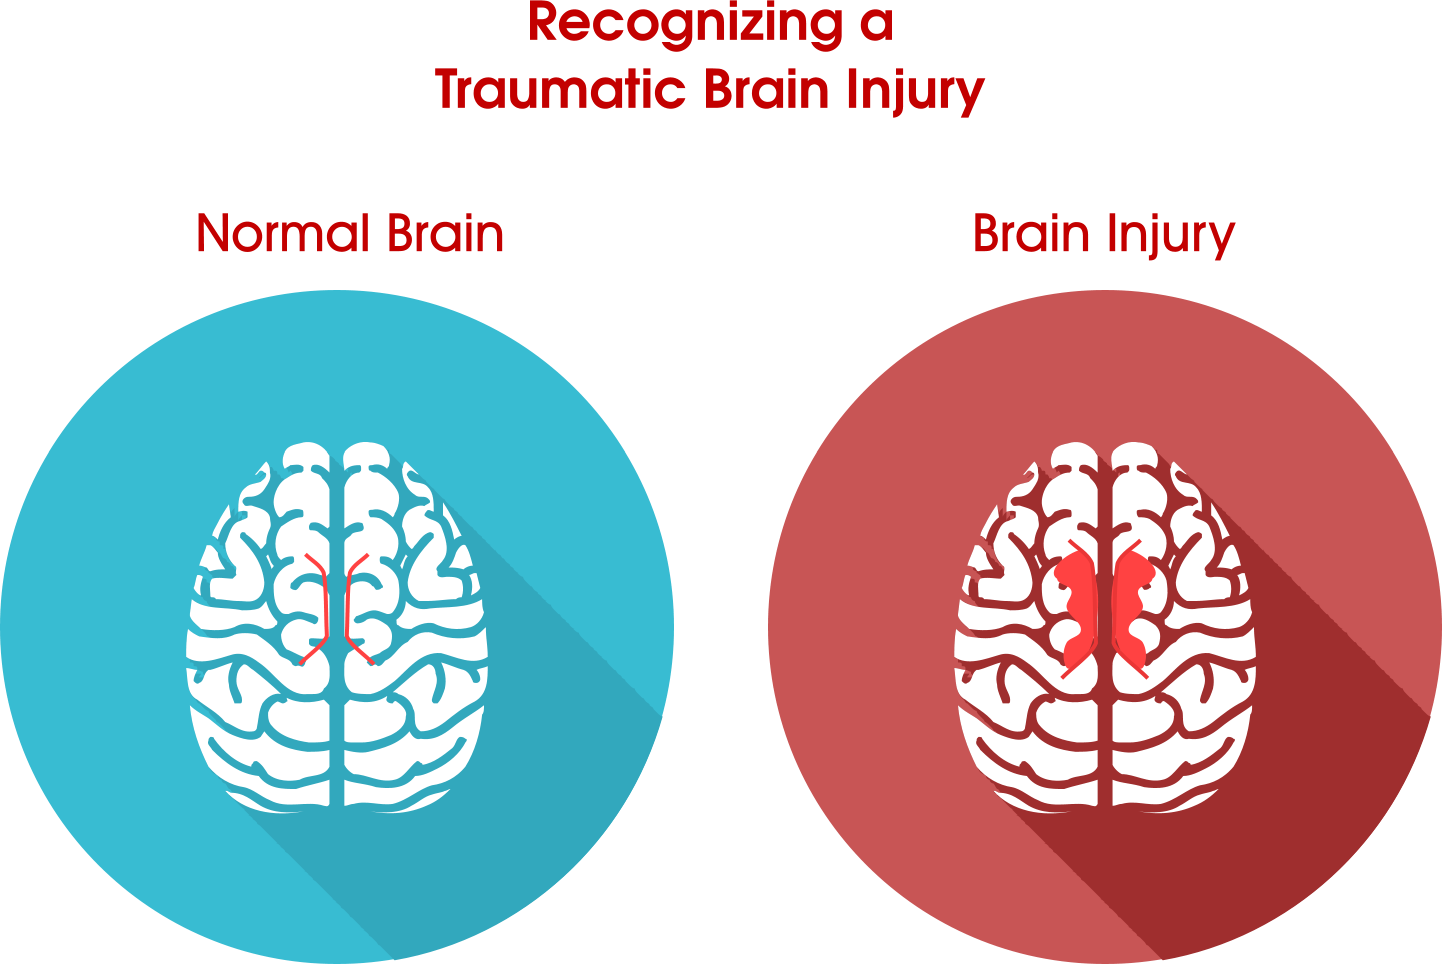 It Is Important To Know That Even A Minor Concussion Or Blow To The Head Can Cause Serious Brain Damage And Lead To Life Long Complications. - Head Injury, Transparent background PNG HD thumbnail